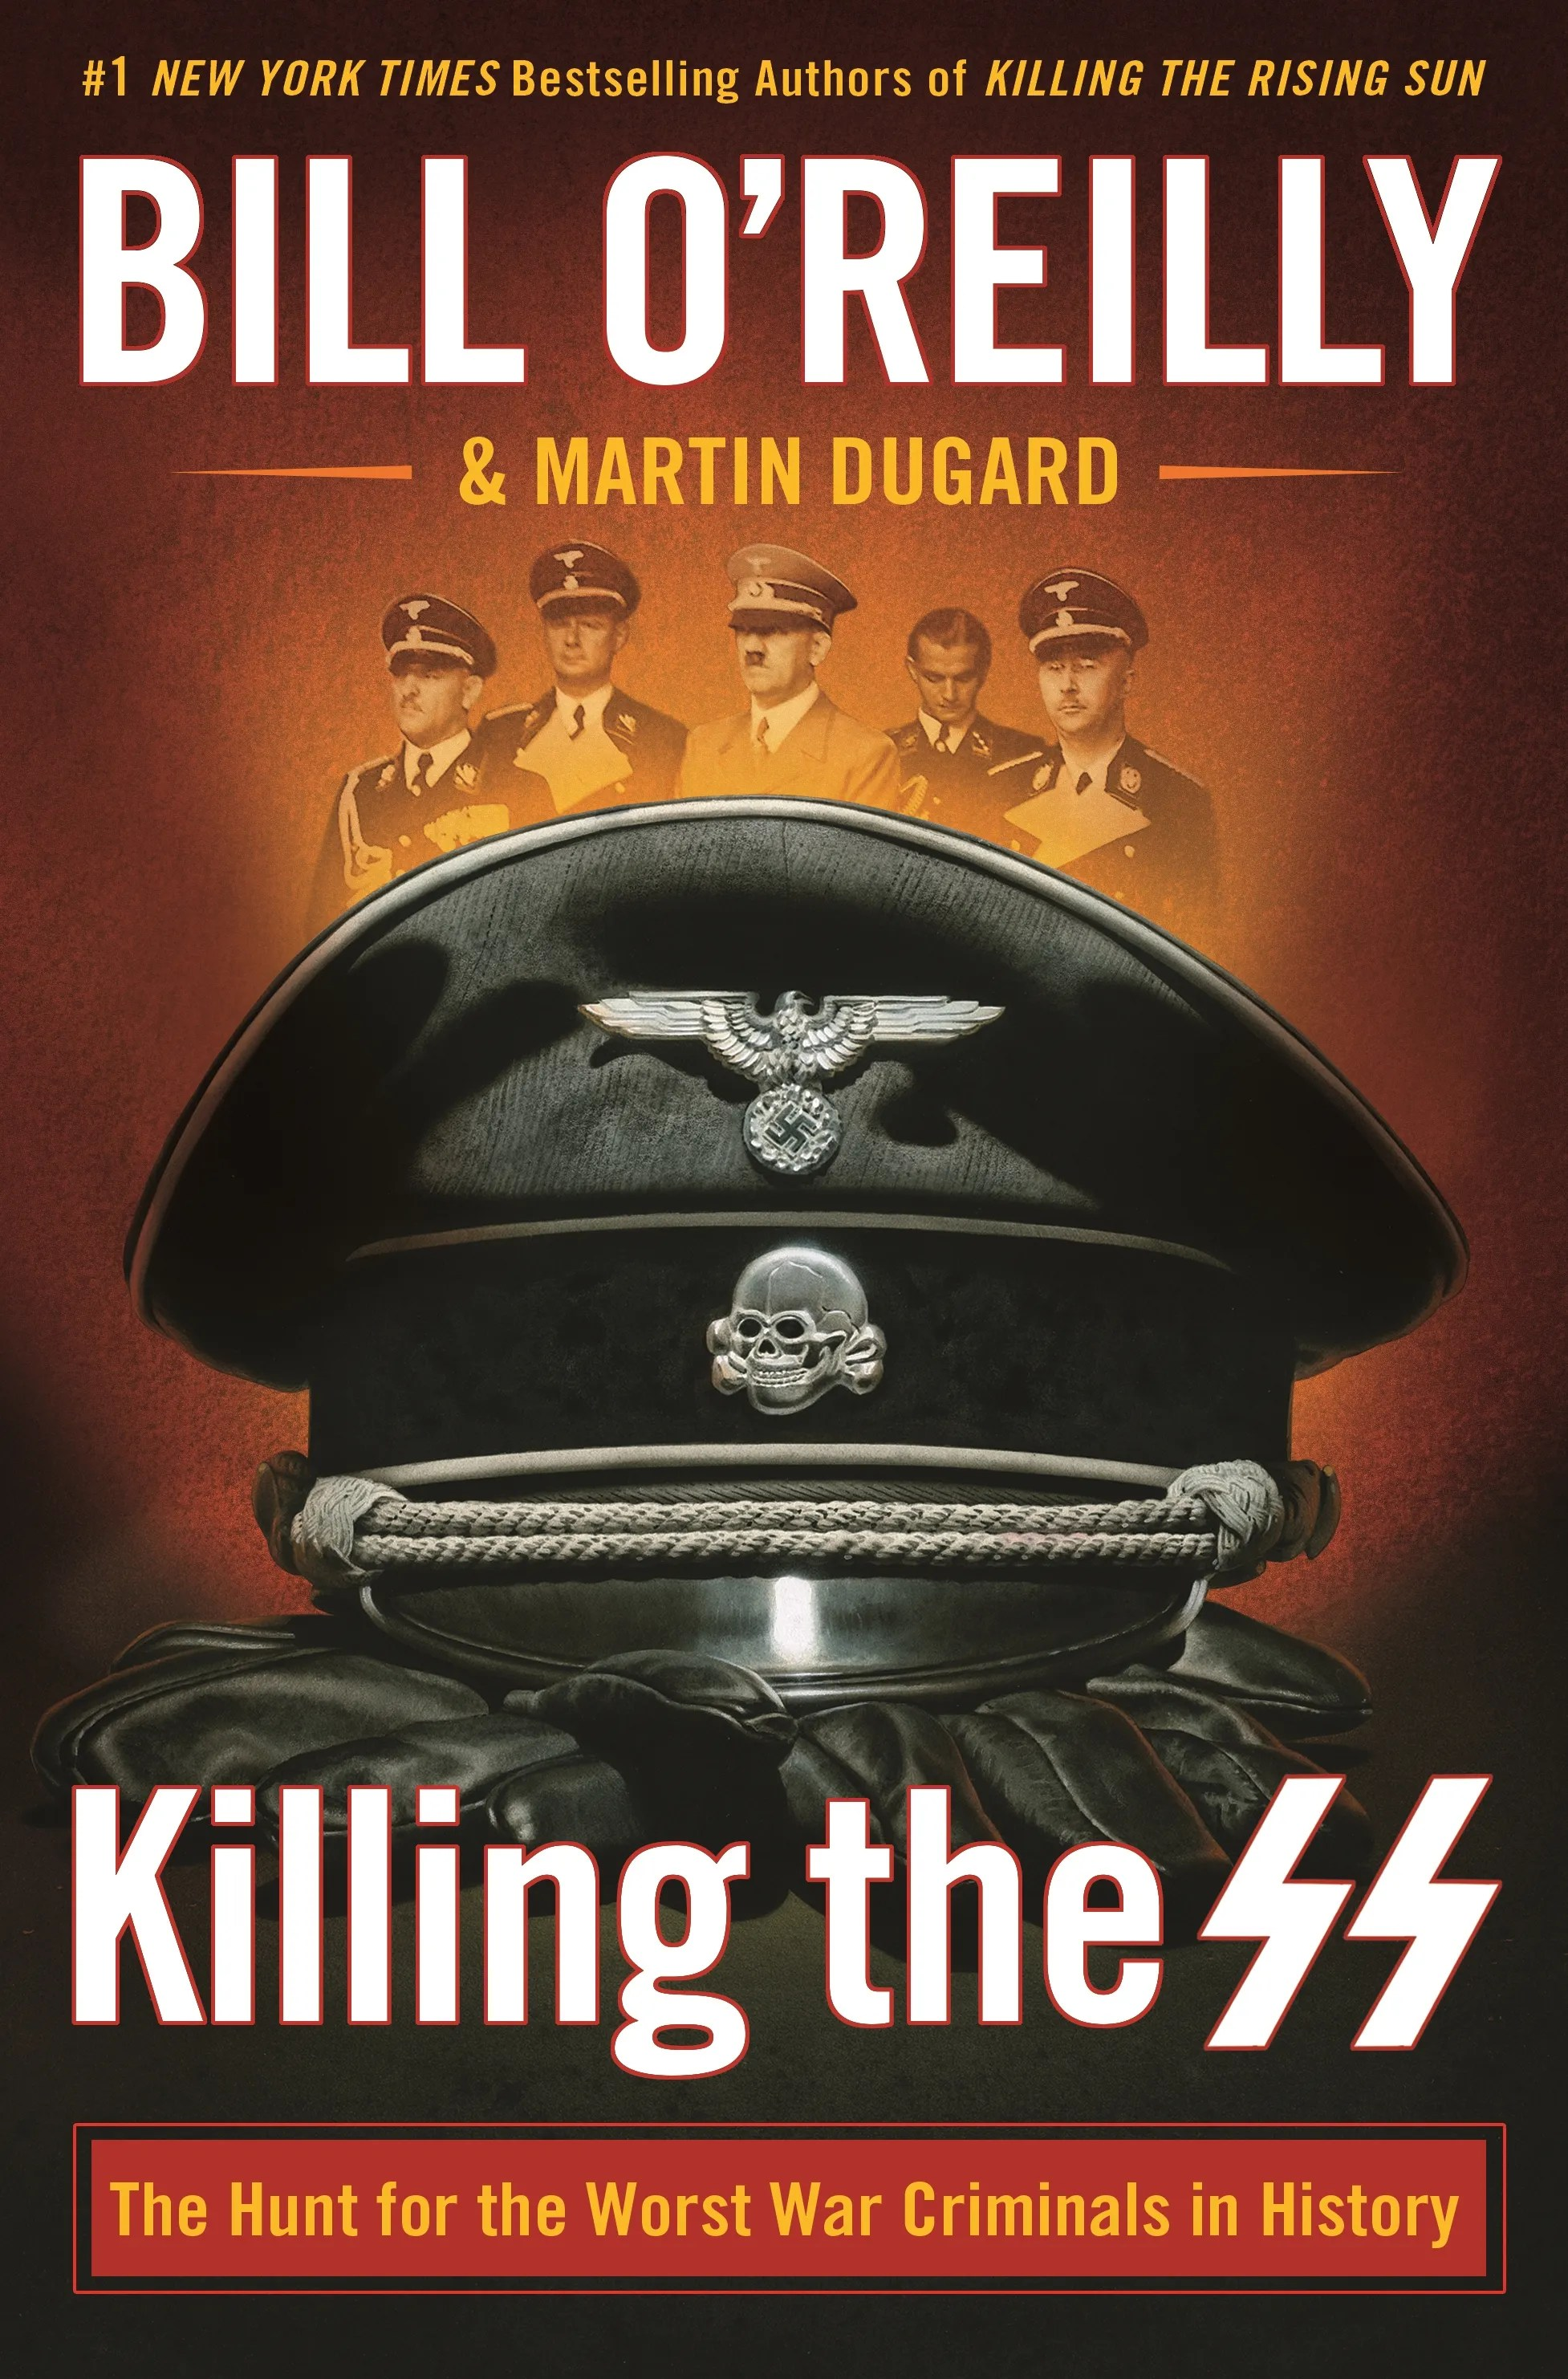 Bill OReilly chases Nazi hunters in new book Killing the SS